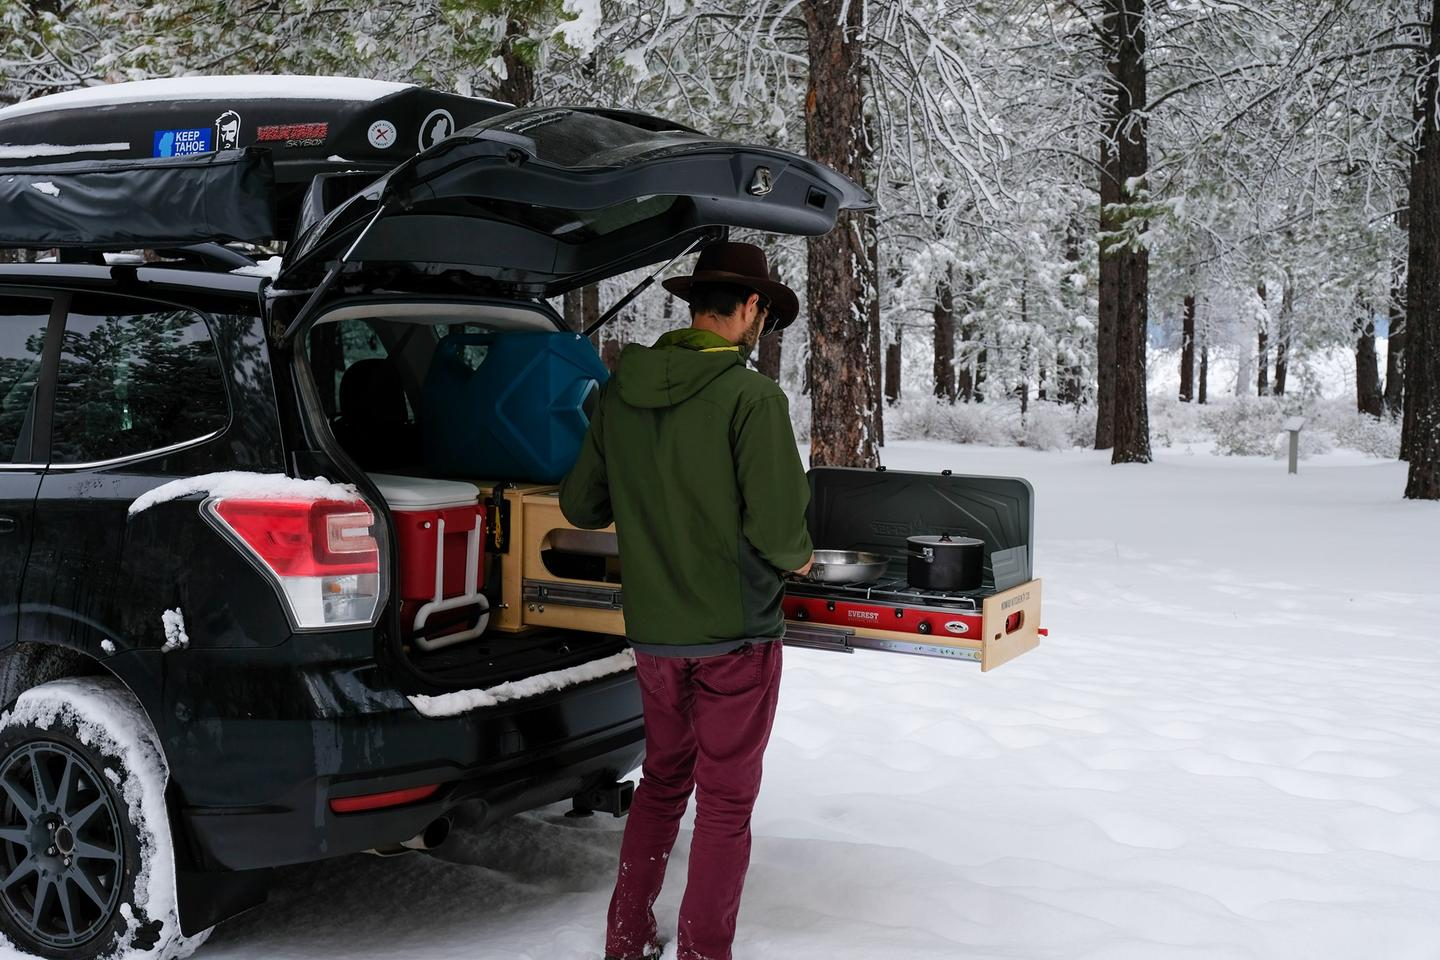 A little winter camping with the Nomad Kitchen